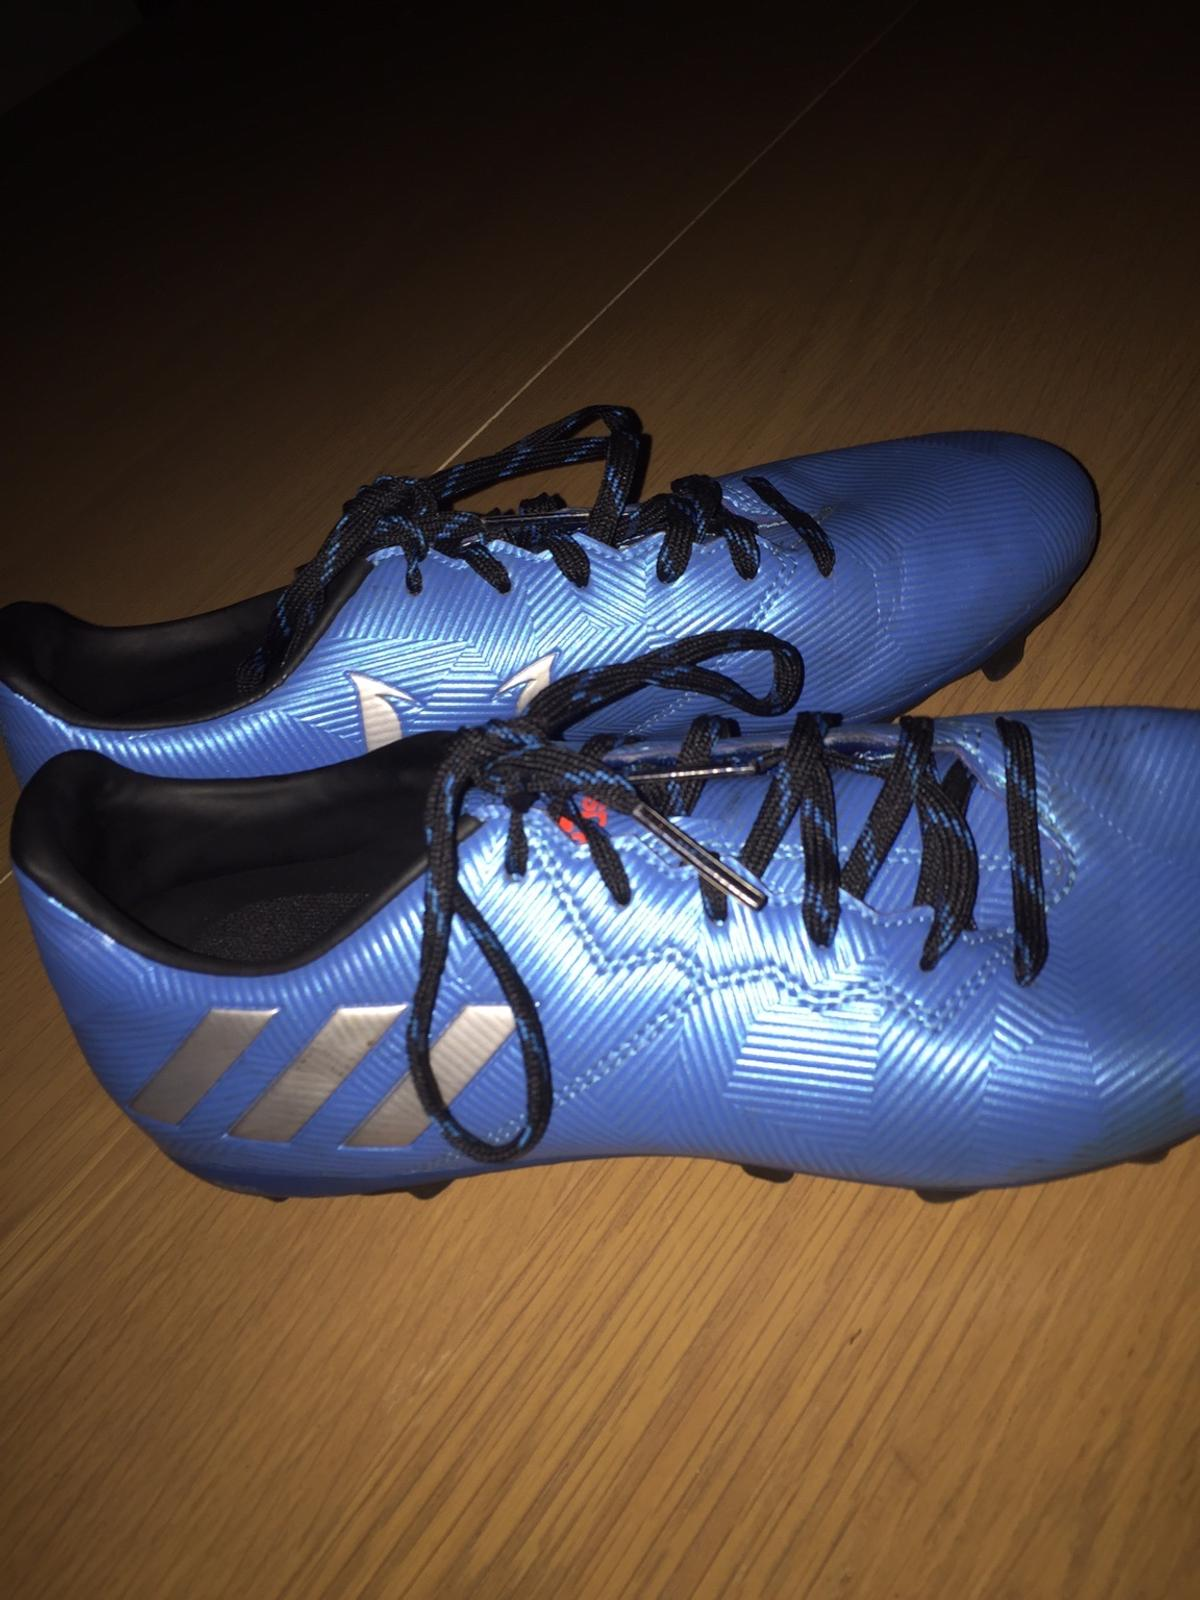 the best delicate colors exclusive deals Adidas Messi 16.4 Astro turf football boots in BB4 Rossendale for ...